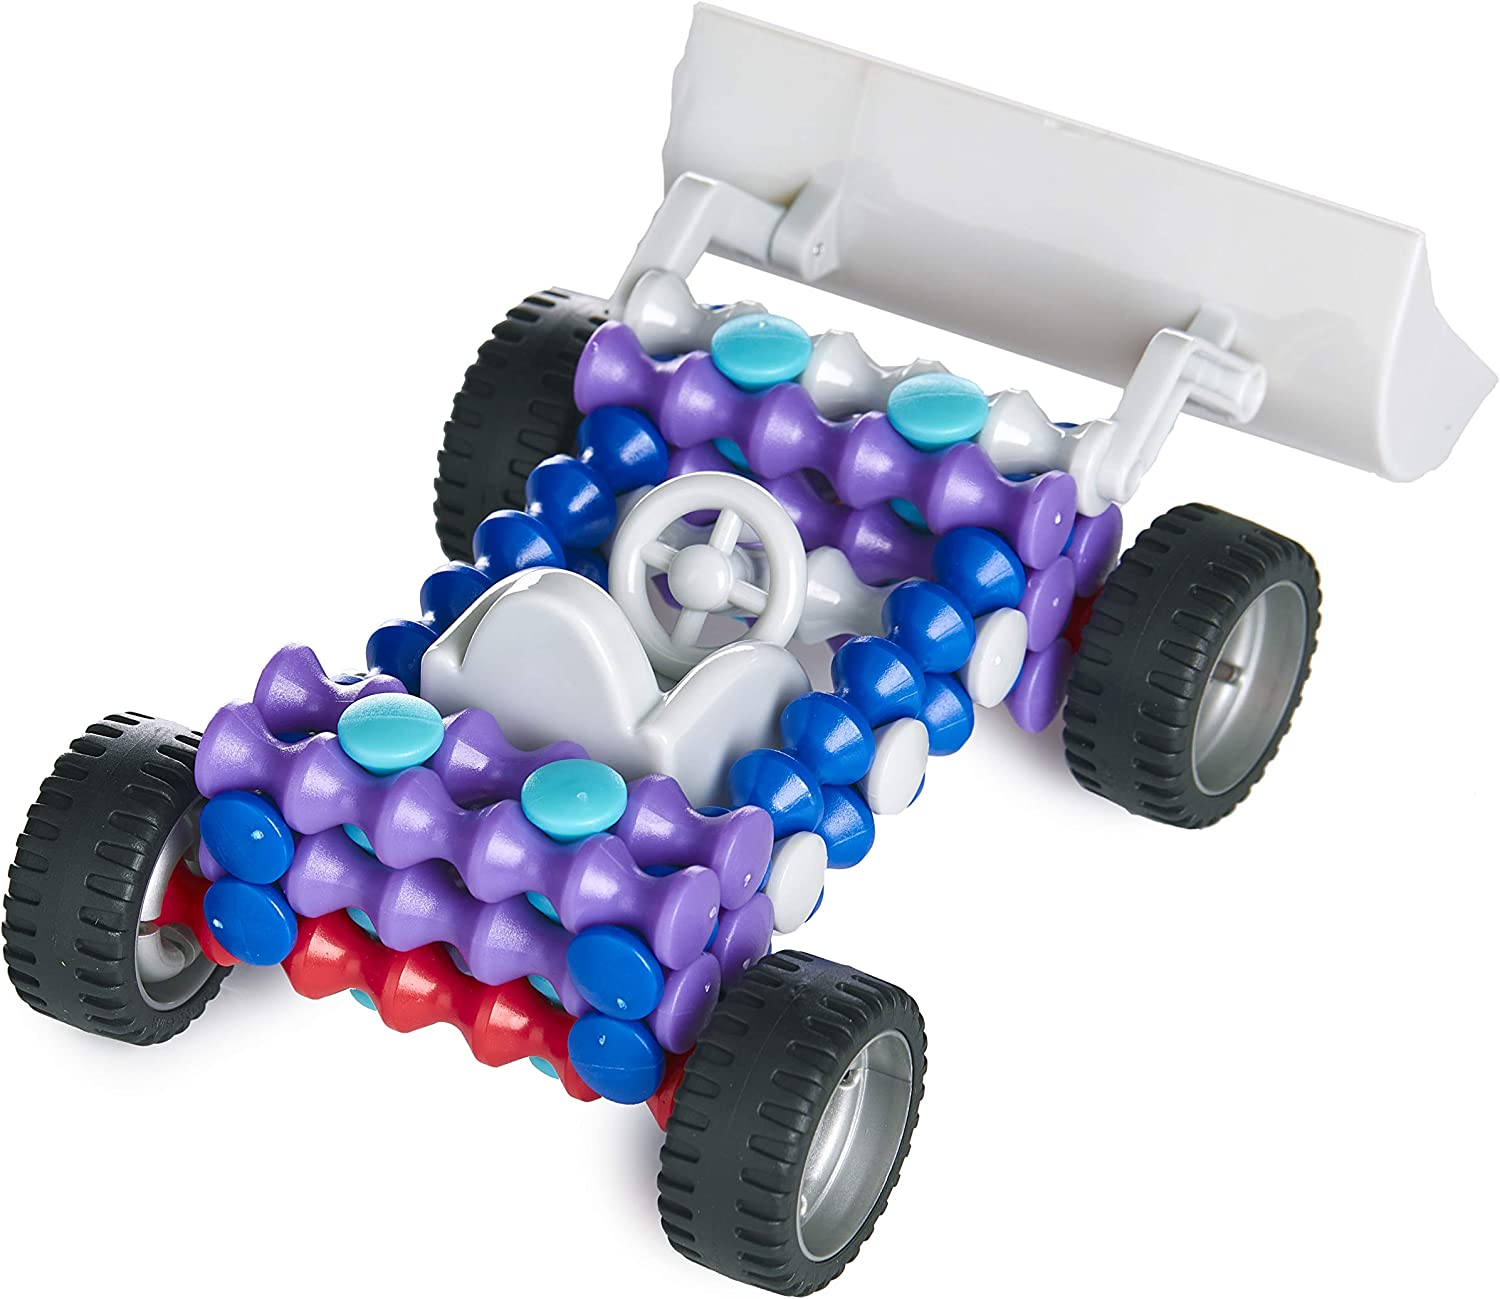 POPULAR PLAYTHINGS Playstix Master Kit Front Loader Construction Toy Building Blocks 26 Piece Kit